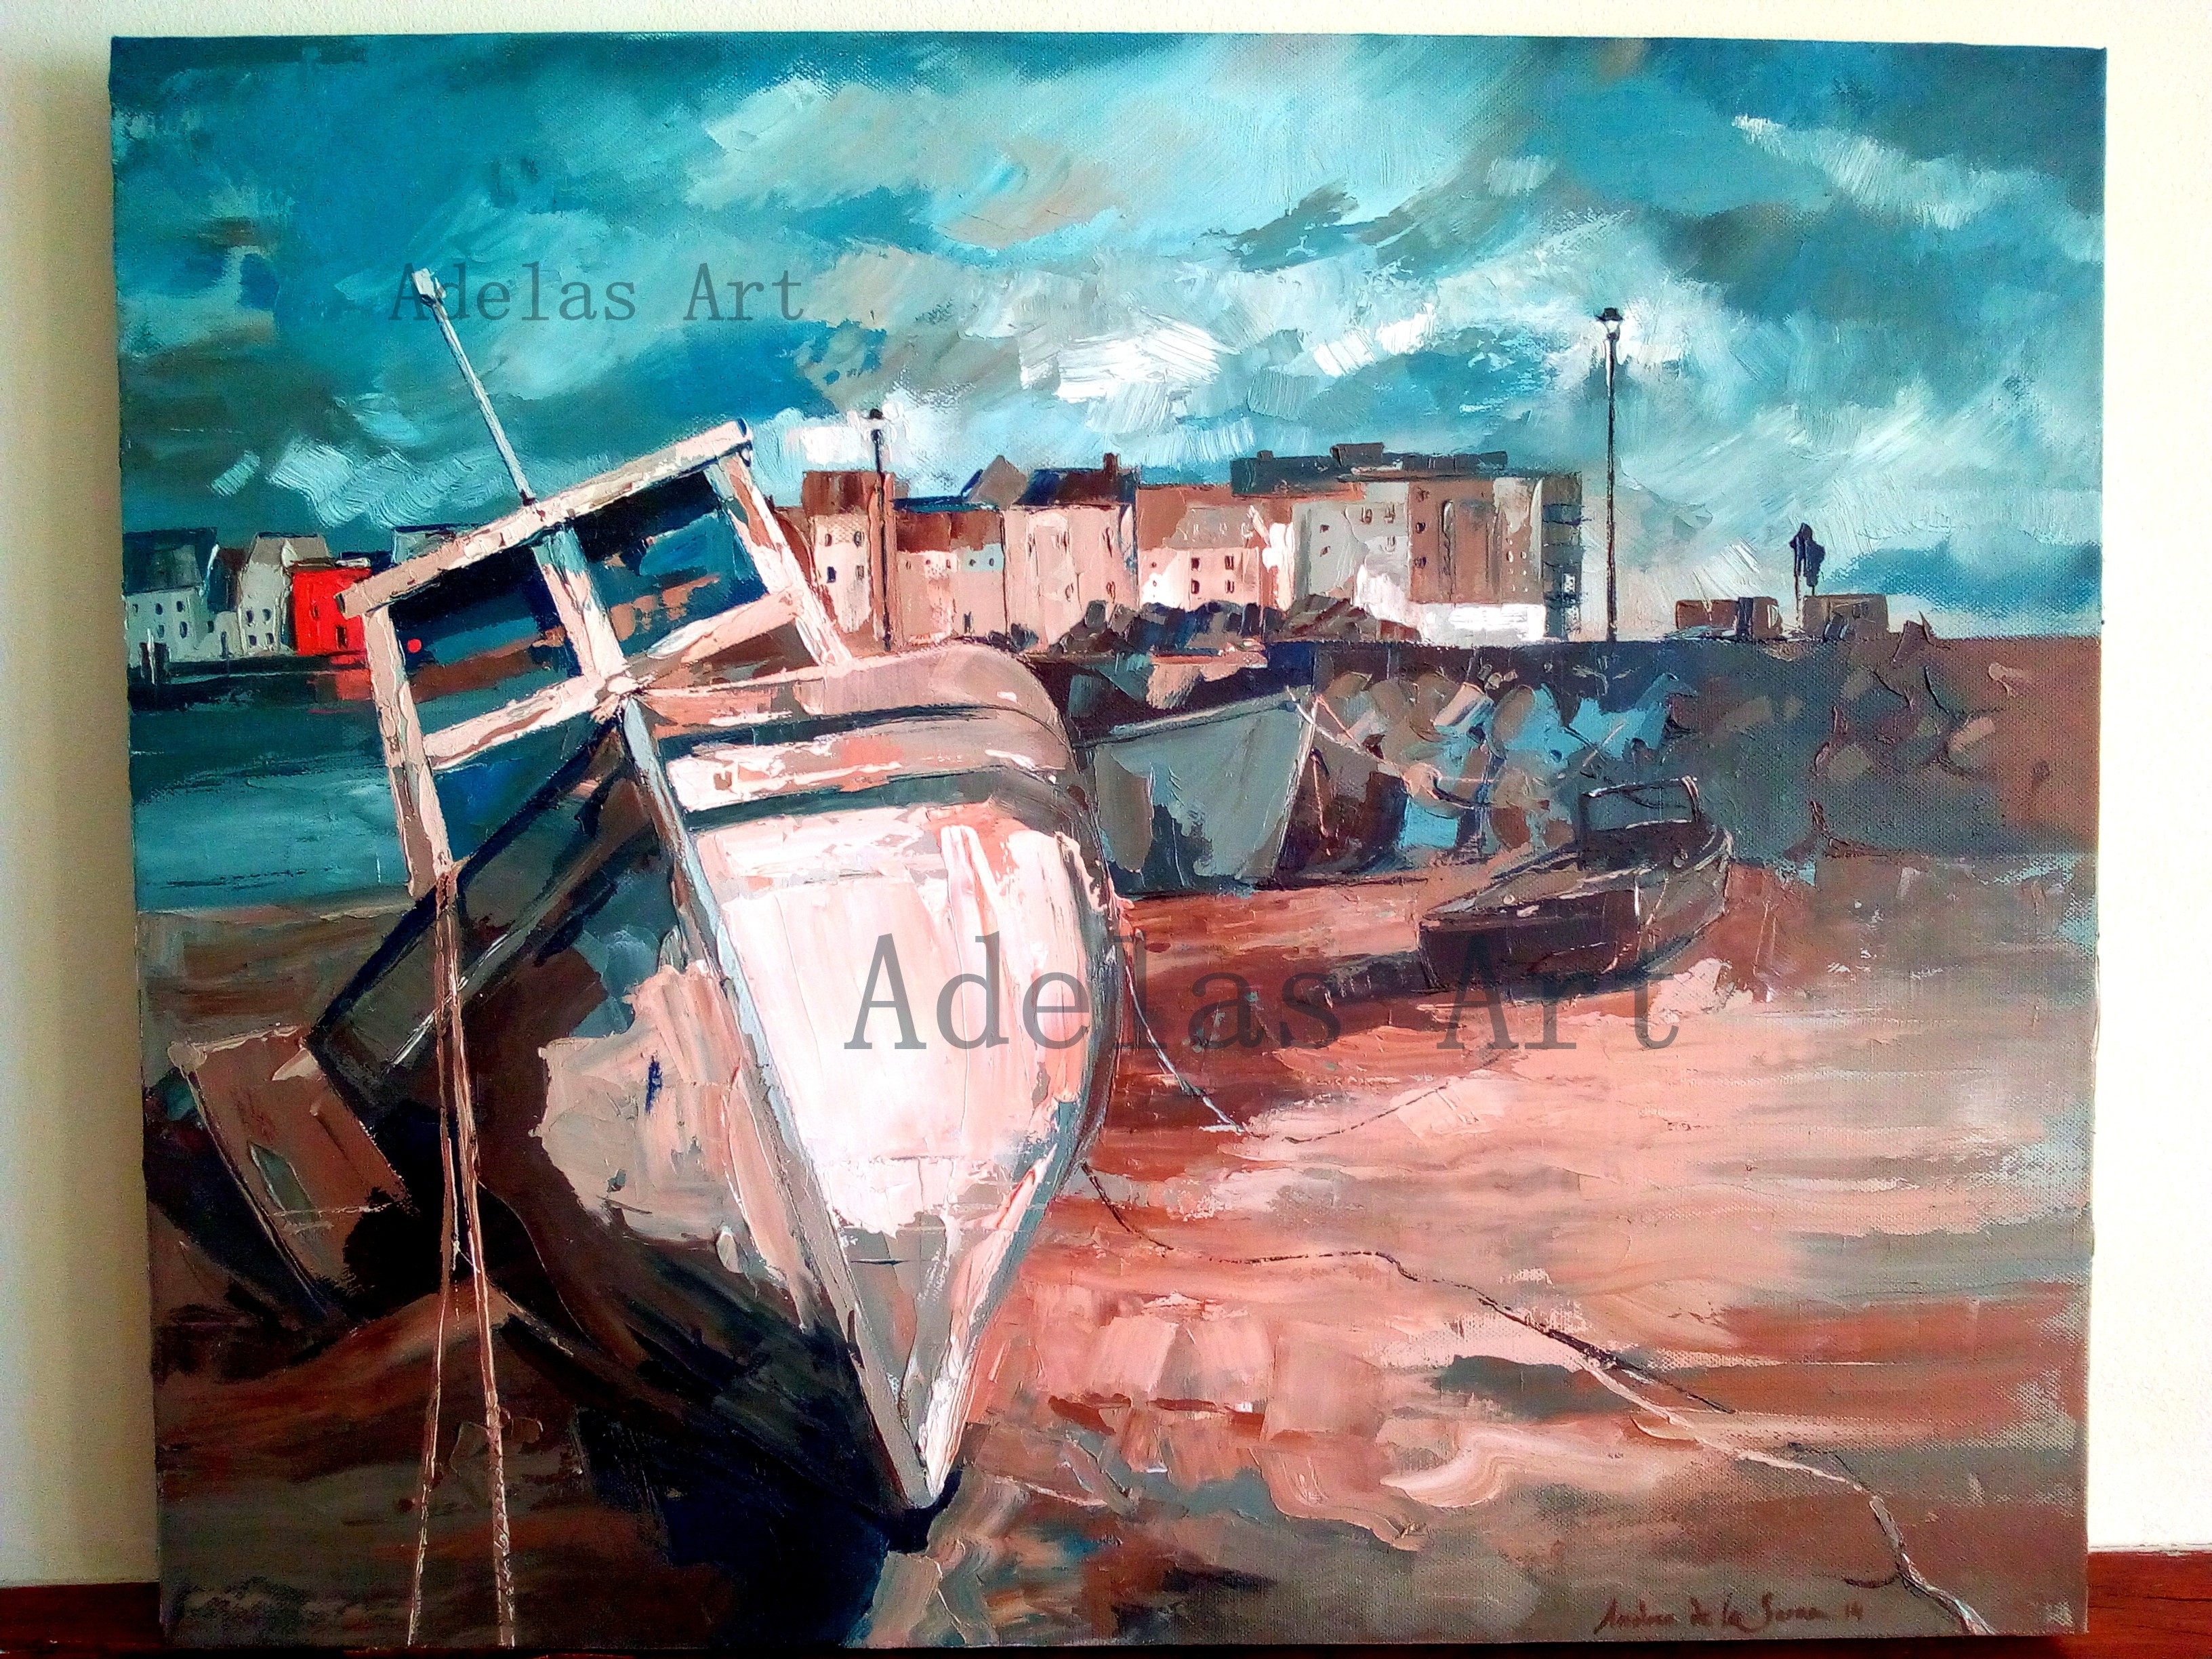 """Galway"" by Adelas Art - front view"